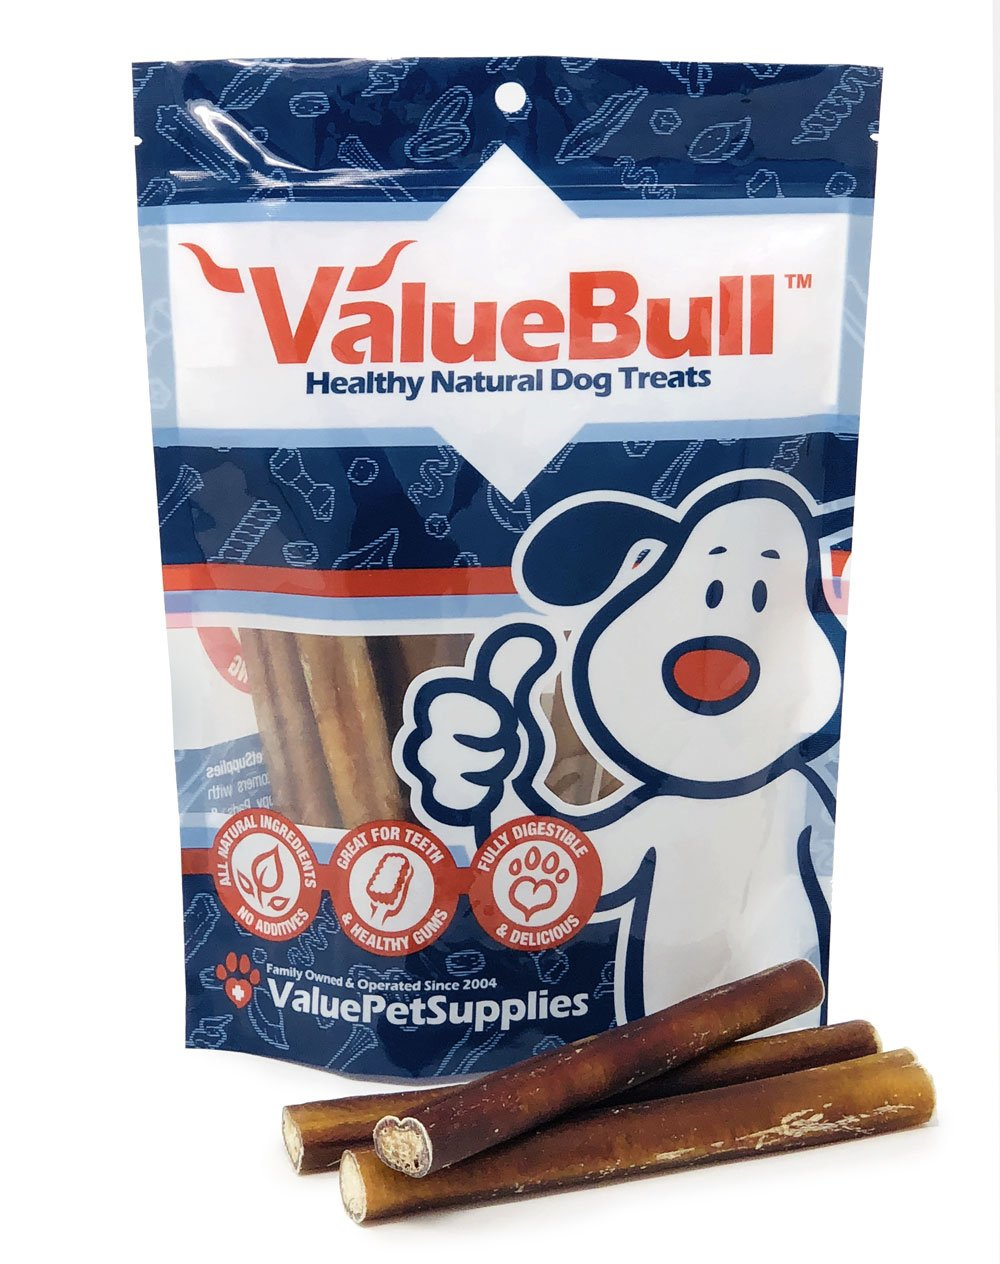 ValueBull Bully Sticks Dog Chews, 6 Inch Thick, All Natural, 50 Count by ValueBull (Image #3)